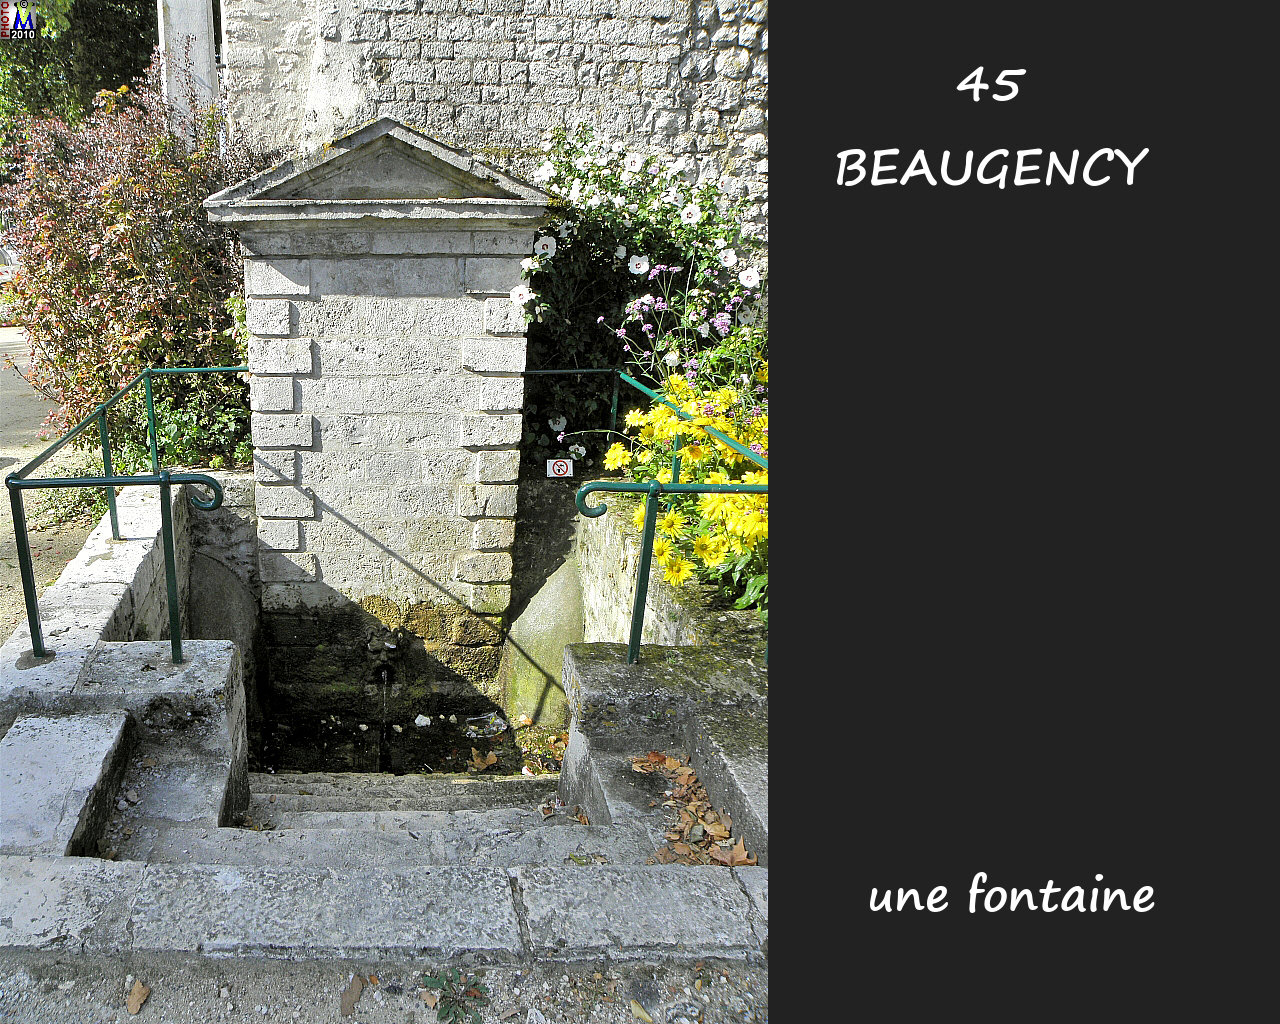 45BEAUGENCY_fontaine_100.jpg